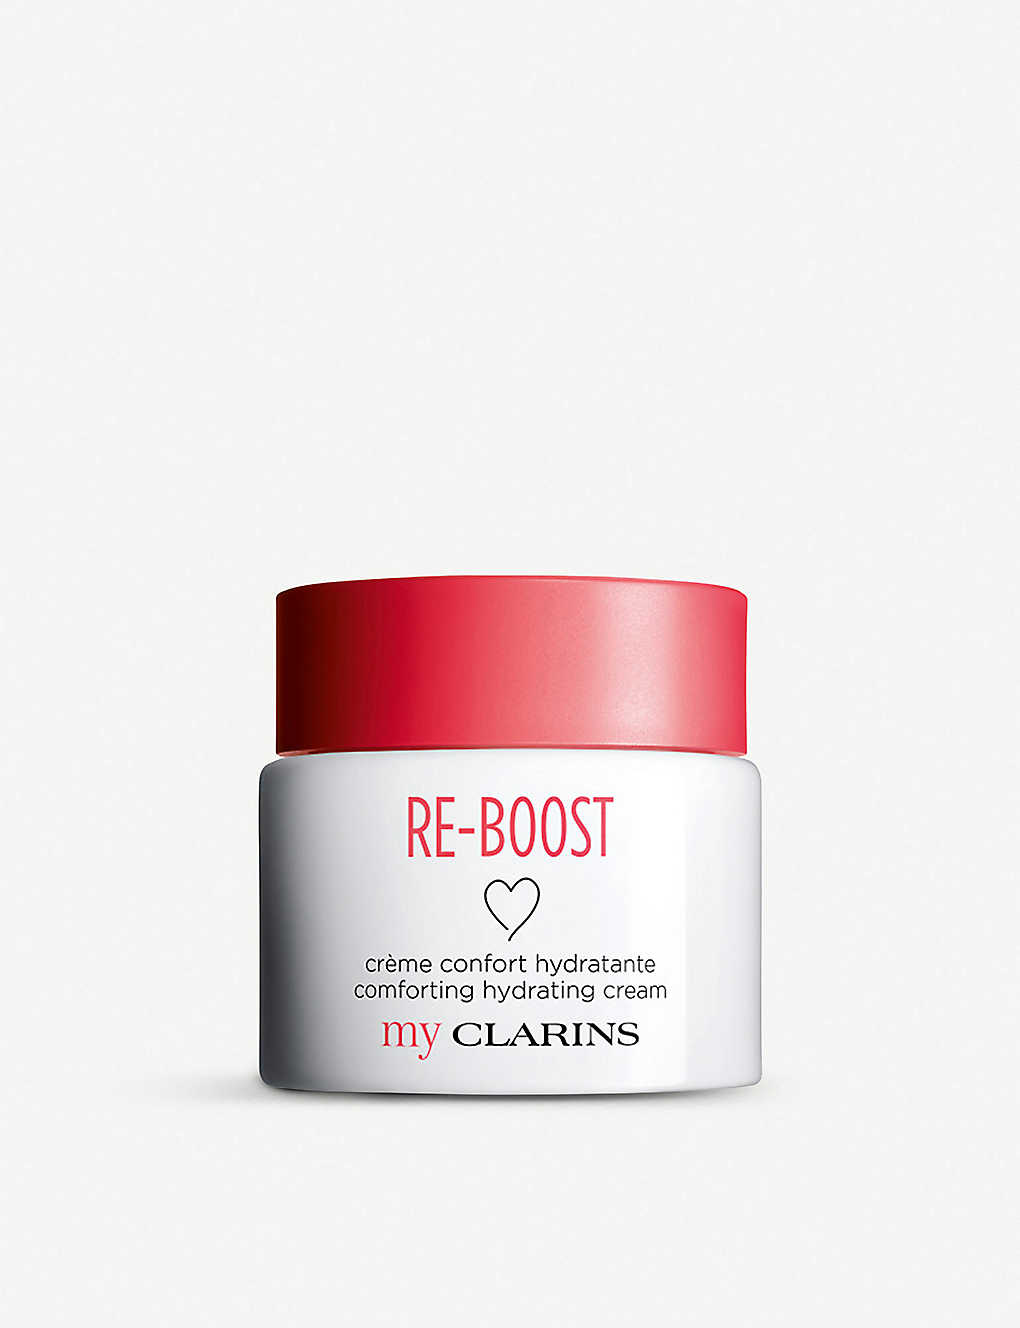 CLARINS: My Clarins RE-BOOST Comforting Hydrating Cream 50ml